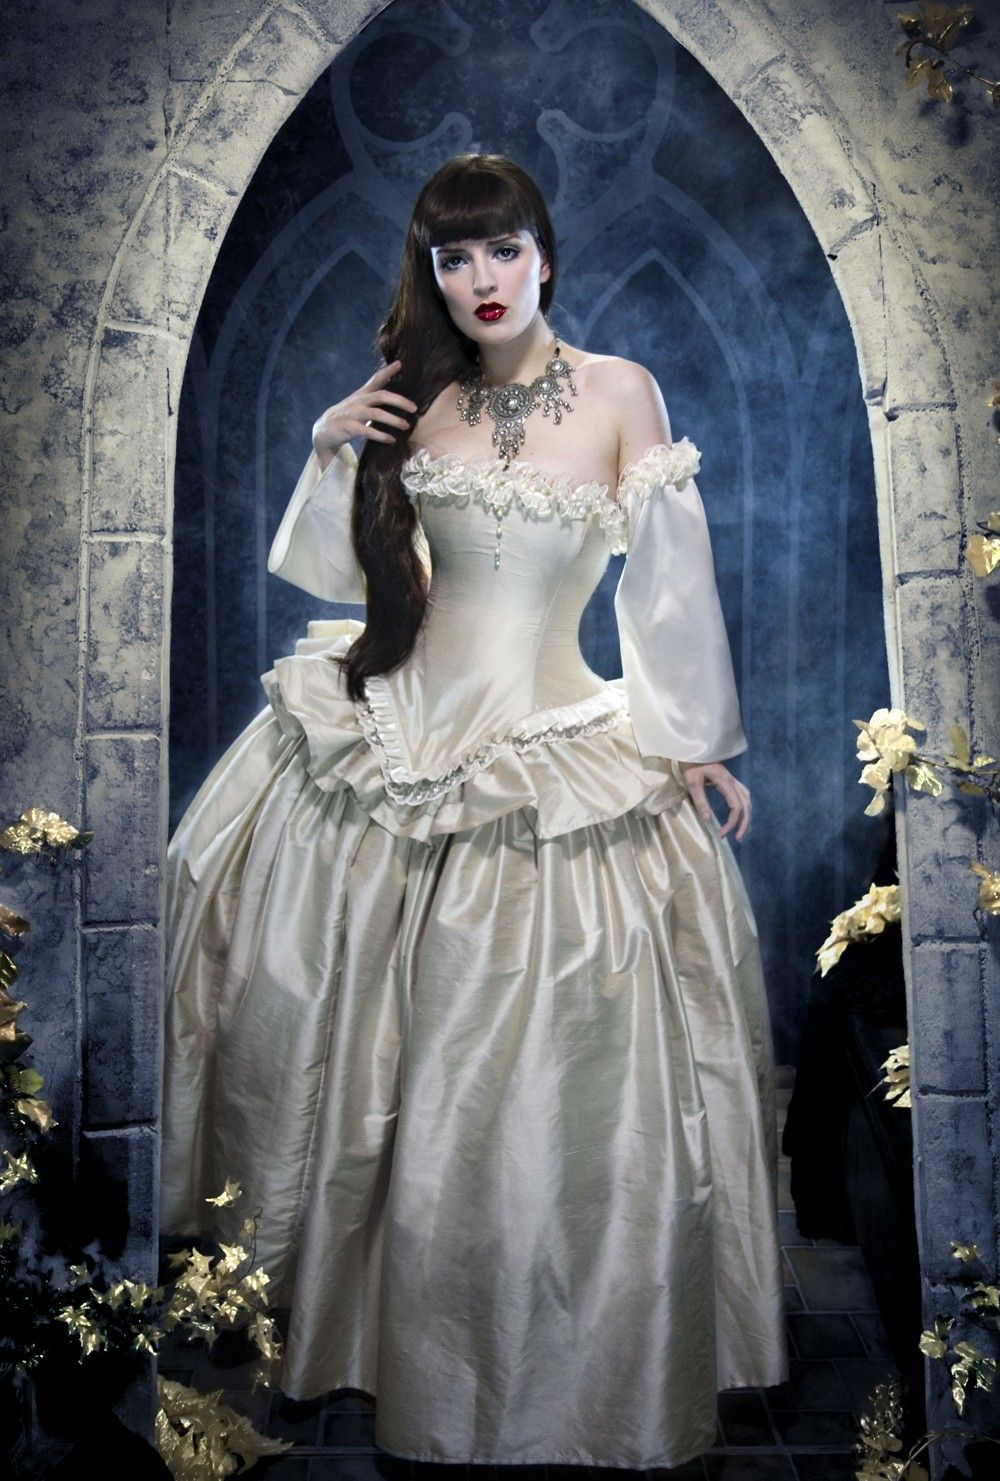 images of gothic women dressed in white Victorian